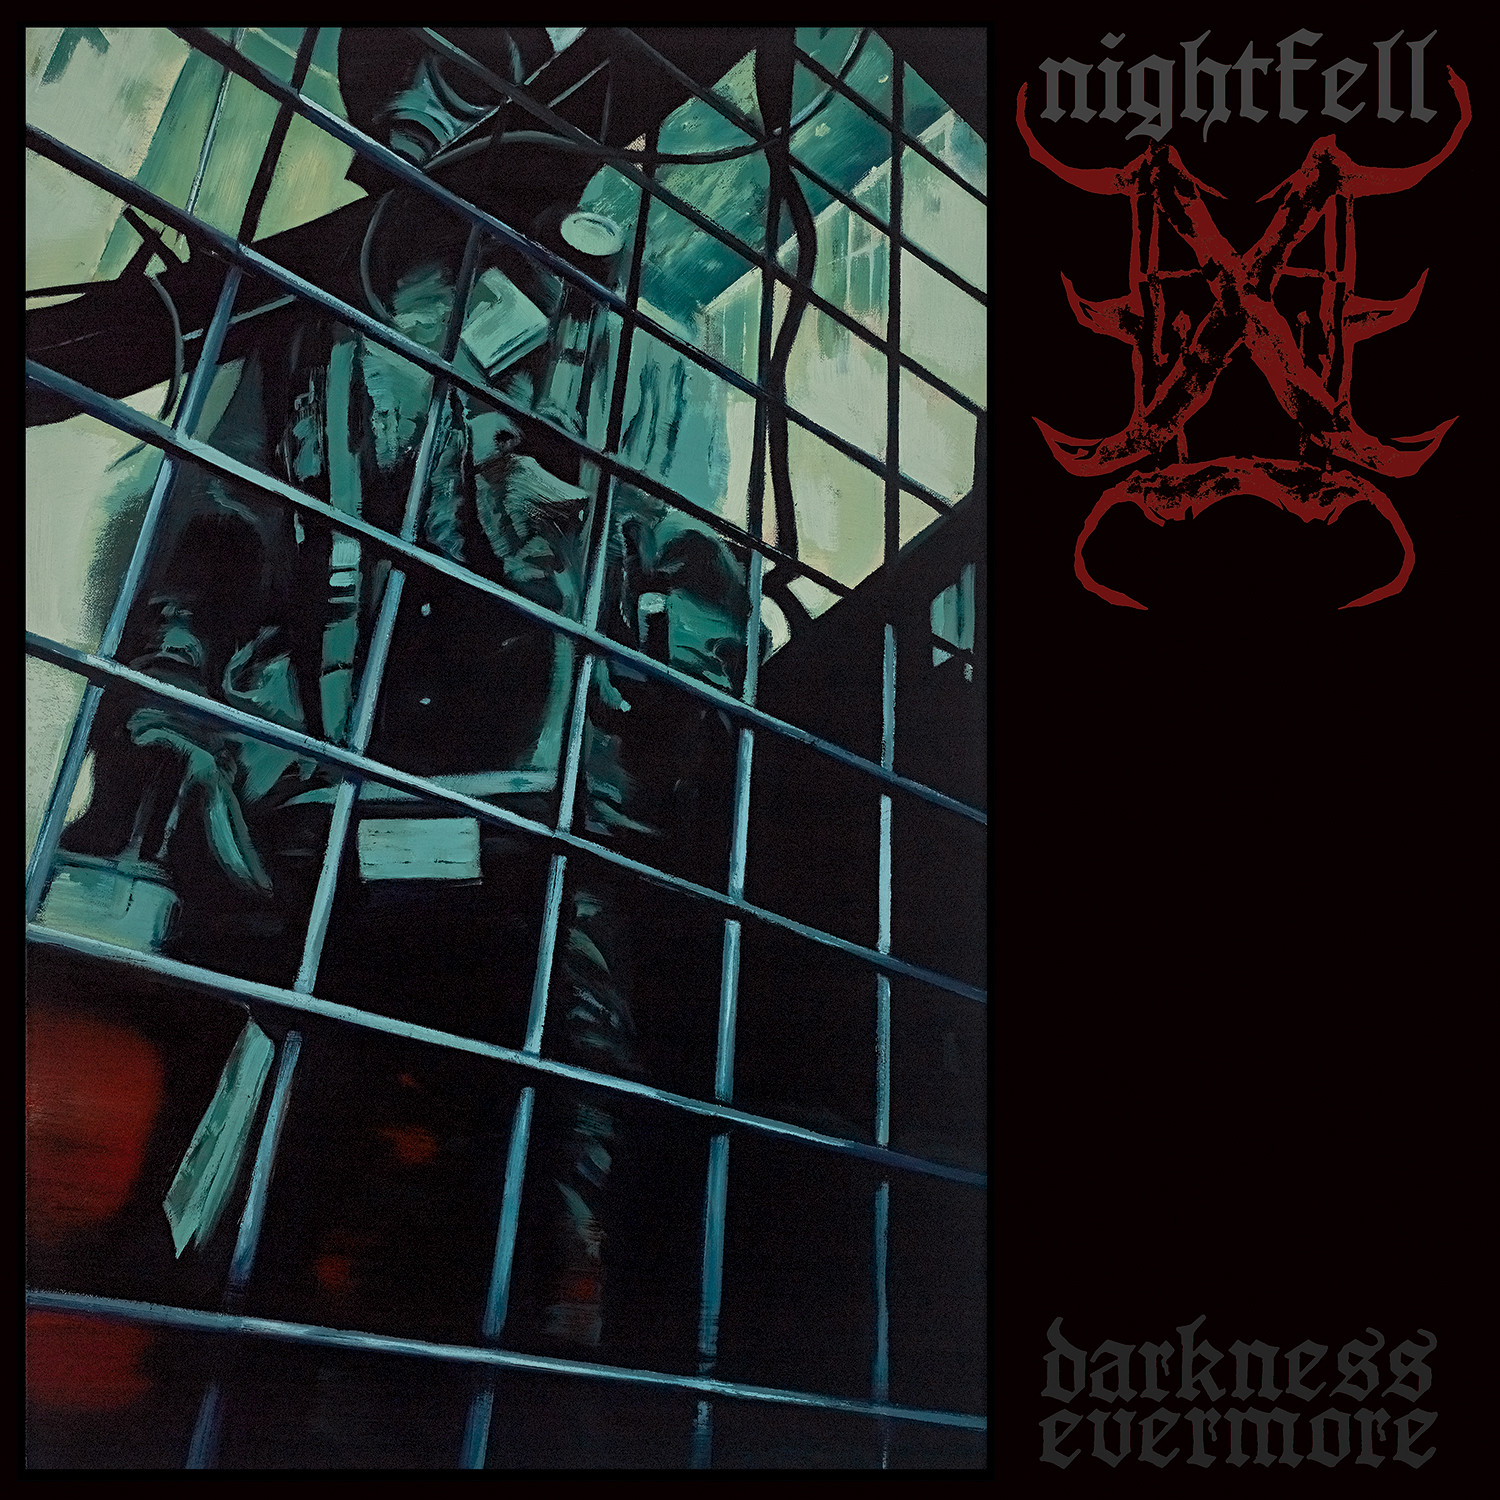 Nightfell – Darkness Evermore Review